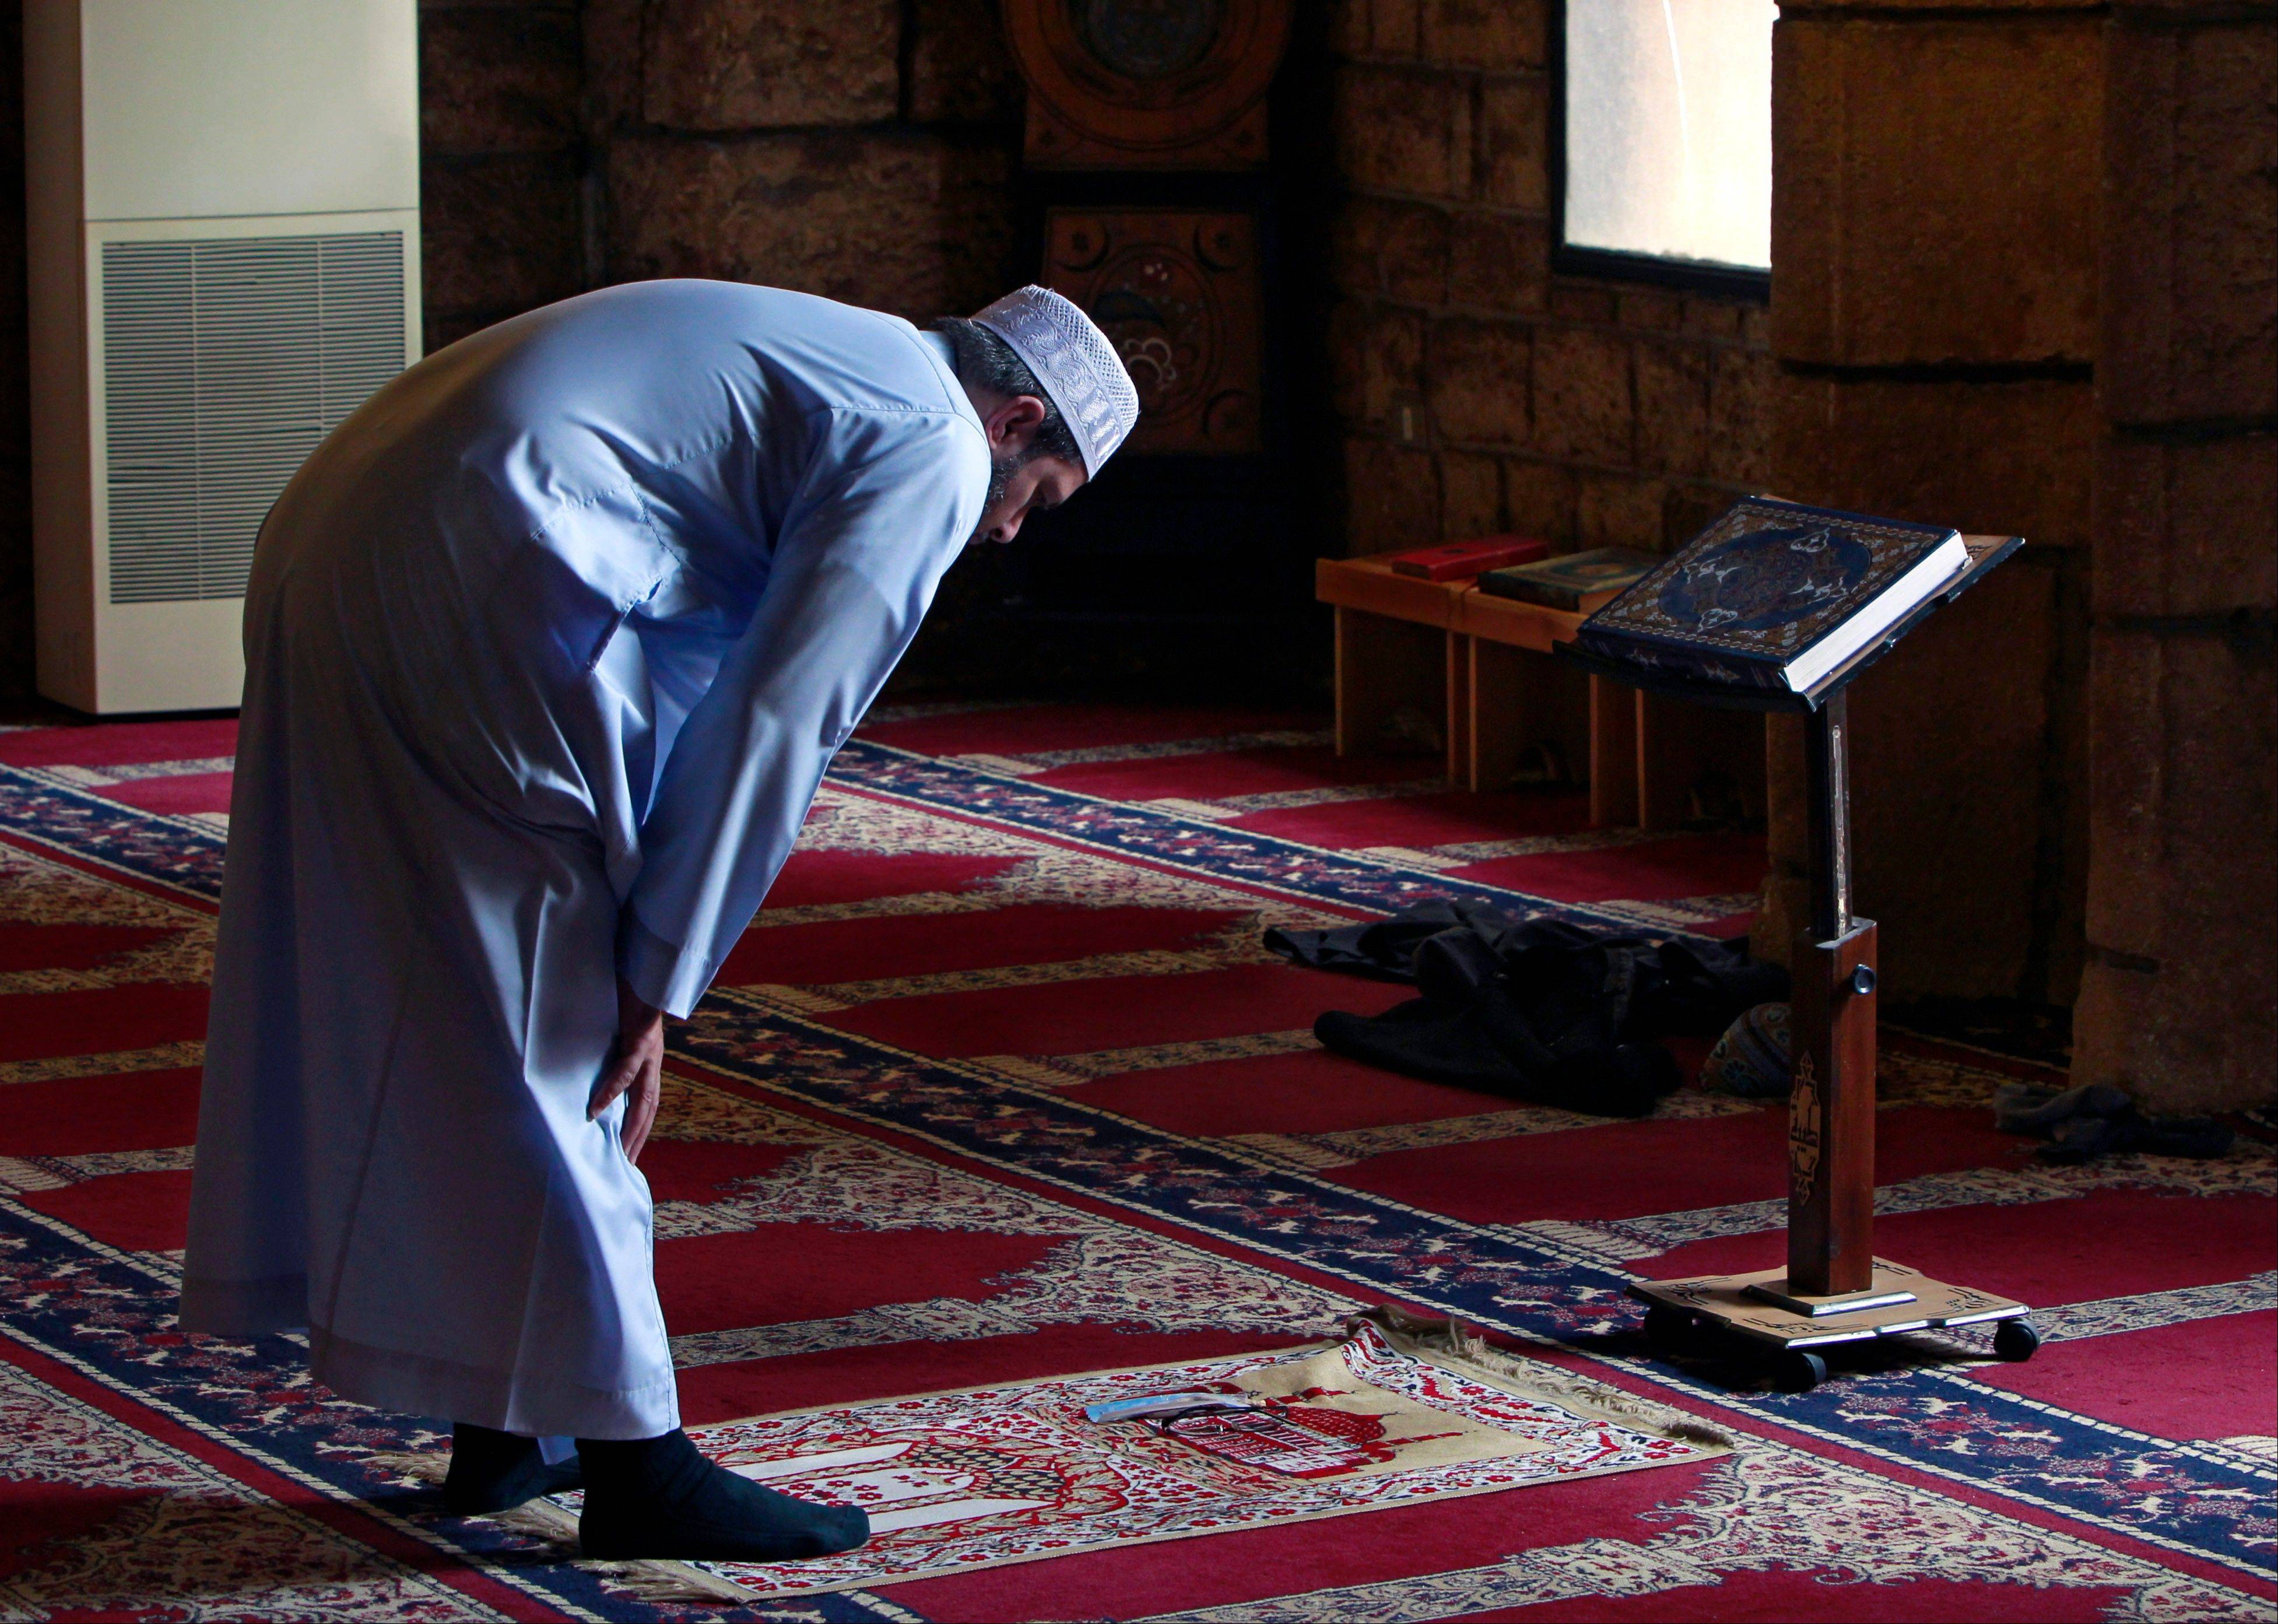 A Lebanese man prays at a mosque in Beirut, Lebanon, Wednesday, July 10, 2013. Many devout Muslims in the Middle East have started observing the dawn-to-dusk fast for the month of Ramadan even as the region is rocked by Egypt's turmoil and the relentless civil war in Syria. For most Sunnis and Shiites, Ramadan started on Wednesday while others are expected to begin observing the holy month on Thursday based on various sightings of the new moon.